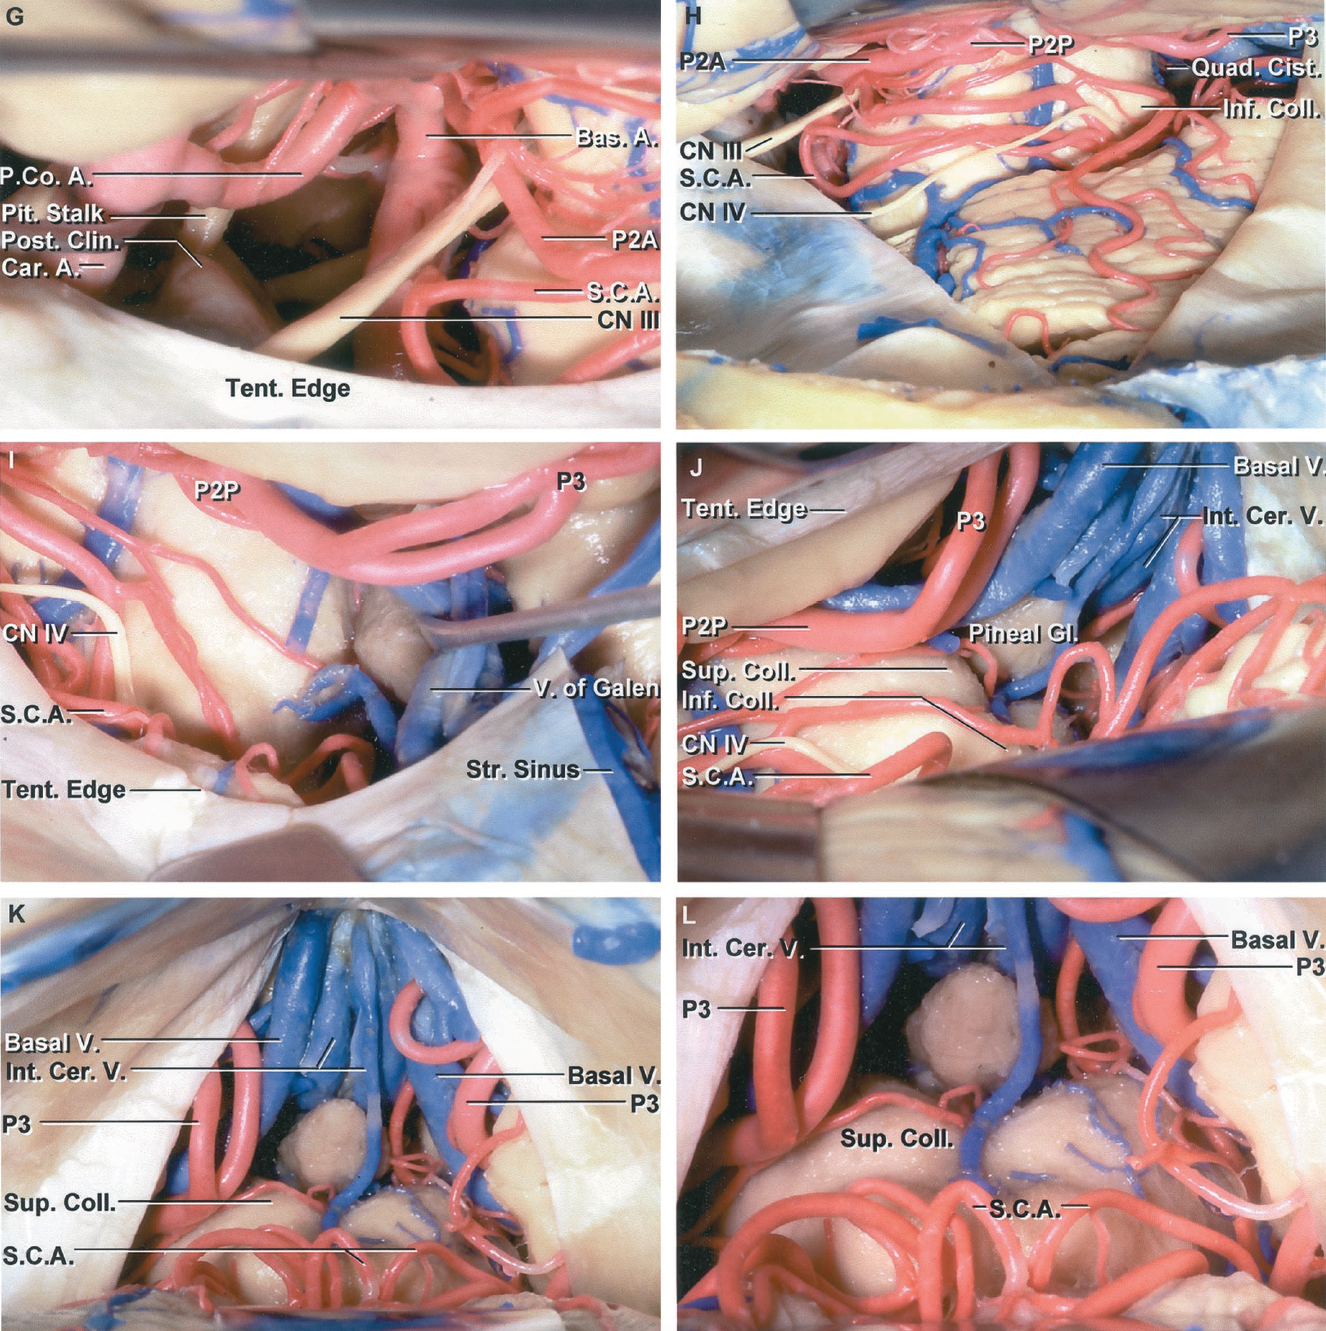 Figure 2.1 G-L. G, subtemporal exposure in another specimen. The PComA is larger than shown in D and E. The oculomotor nerve passes forward between the PCA and the superior cerebellar arteries. H, the exposure has been extended further posteriorly along the side of the brainstem to the quadrigeminal cistern. The tentorium has been divided to expose the upper part of the cerebellum. The PCA and superior cerebellar artery encircle the brainstem to reach the quadrigeminal cistern. The P2 is divided into a P2A that courses in the crural cistern between the uncus and cerebral peduncle, and a P2P that courses in the ambient cisterns between the parahippocampal gyrus on the midbrain. The P3 courses in the quadrigeminal cistern. The trochlear nerve arises below the inferior colliculus and crosses above the branches of the superior cerebellar artery. I, the exposure has been extended further posteriorly, above the tentorium to the left half of the quadrigeminal cistern. The tributaries of the vein of Galen have been retracted to expose the pineal. The PCA courses above the tentorium and the superior cerebellar artery below. The trochlear nerve arises below the inferior colliculus and passes around the brainstem. J, the exposure has been directed below the tentorium. The internal cerebral veins exit the roof of the third ventricle and the basal veins exit the basal cisterns to join and form the vein of Galen. The P3 courses through the quadrigeminal cistern. K, midline infratentorial exposure. The pineal is exposed between the posterior cerebral arteries and basal veins and below the internal cerebral veins. The exposure into the fissure between the cerebellum and midbrain is not as great as can be achieved when the exposure is directed off to the side of the vermian apex in a paramedian location as shown in J. L, enlarged view of the midline infratentorial exposure. A., artery, arteries; A.Co.A., anterior communicating artery; Bas., basilar; Bifurc., bifurcation; Br., branch